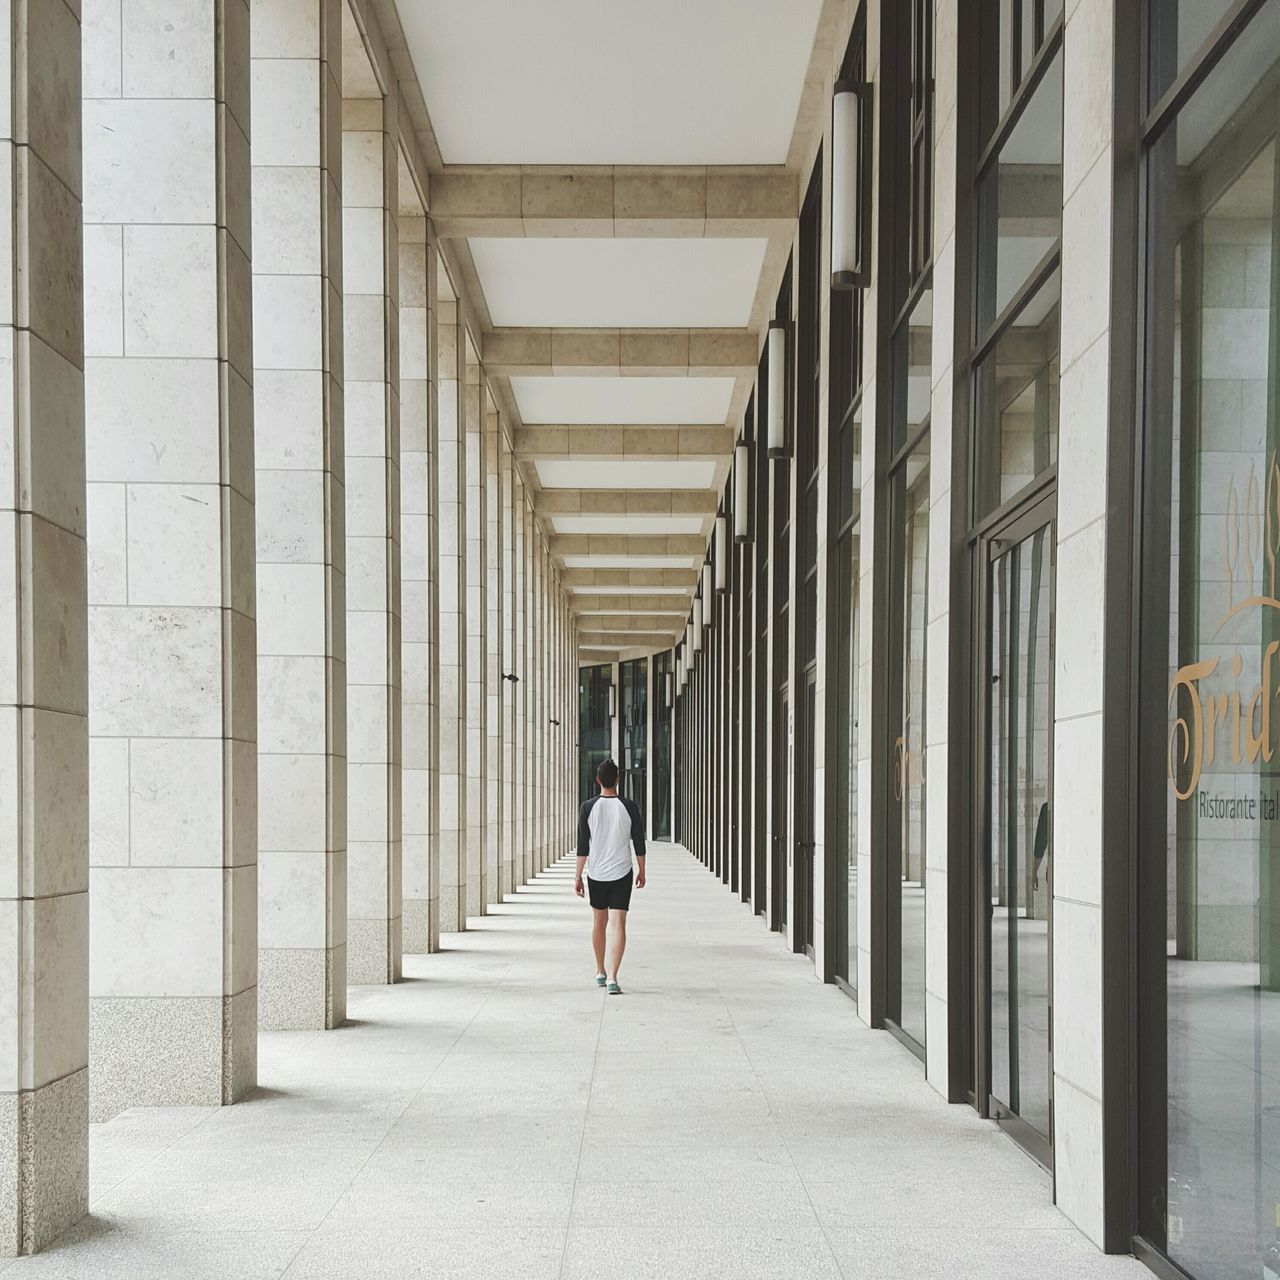 Let's walk this way! Architecture The Traveler - 2015 EyeEm Awards People Urban Geometry Minimalism Wanderlust Portrait City Open Edit EyeEm Best Shots